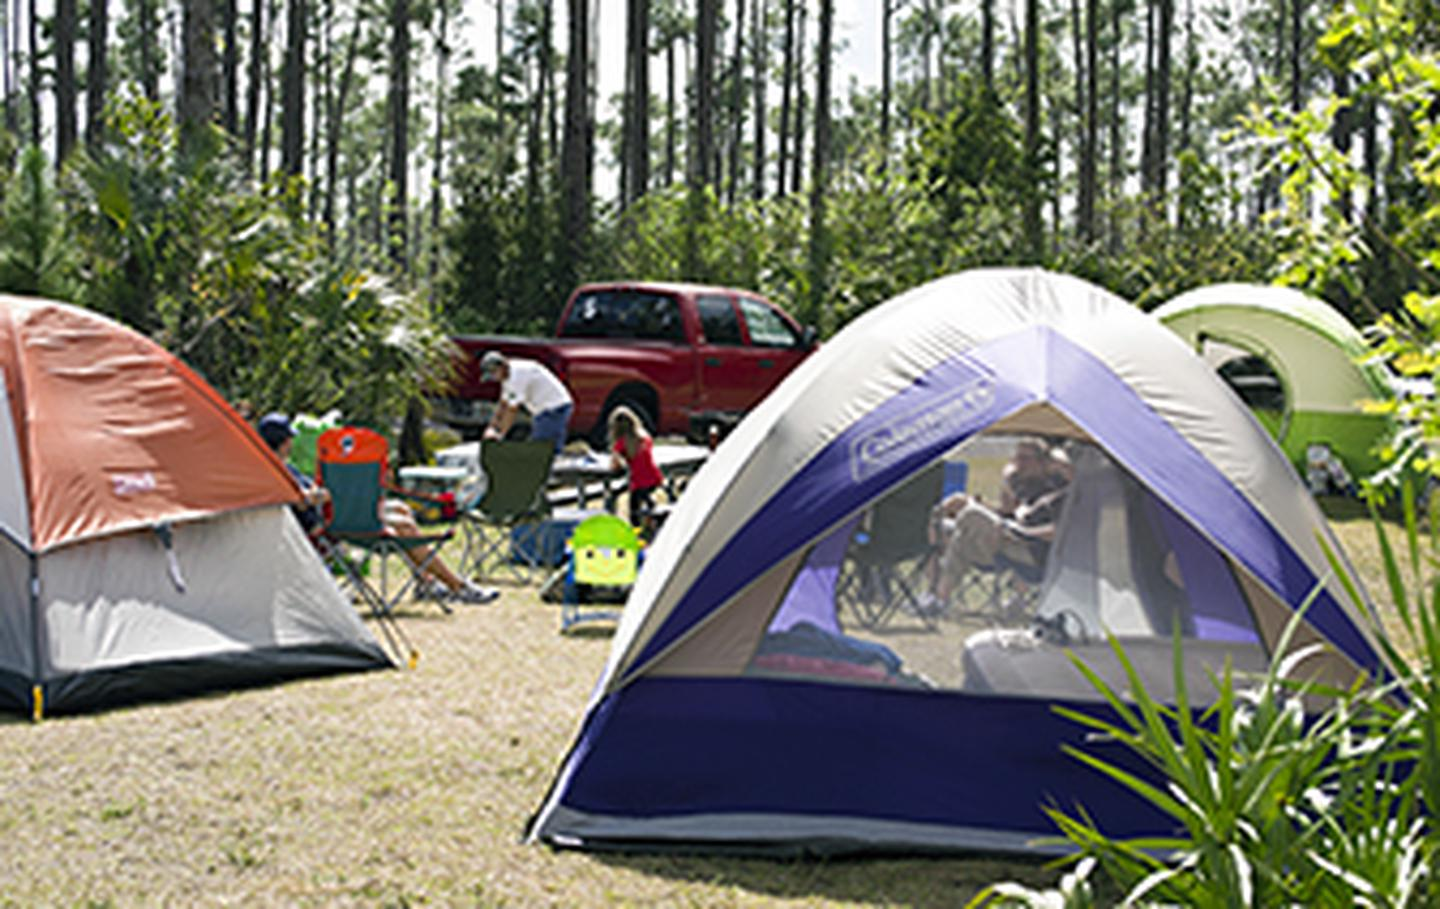 Camping at Long Pine KeyLong Pine Key Campground is open seasonally from November through May. It is located seven miles (11 km) from the main entrance, just off the main road.